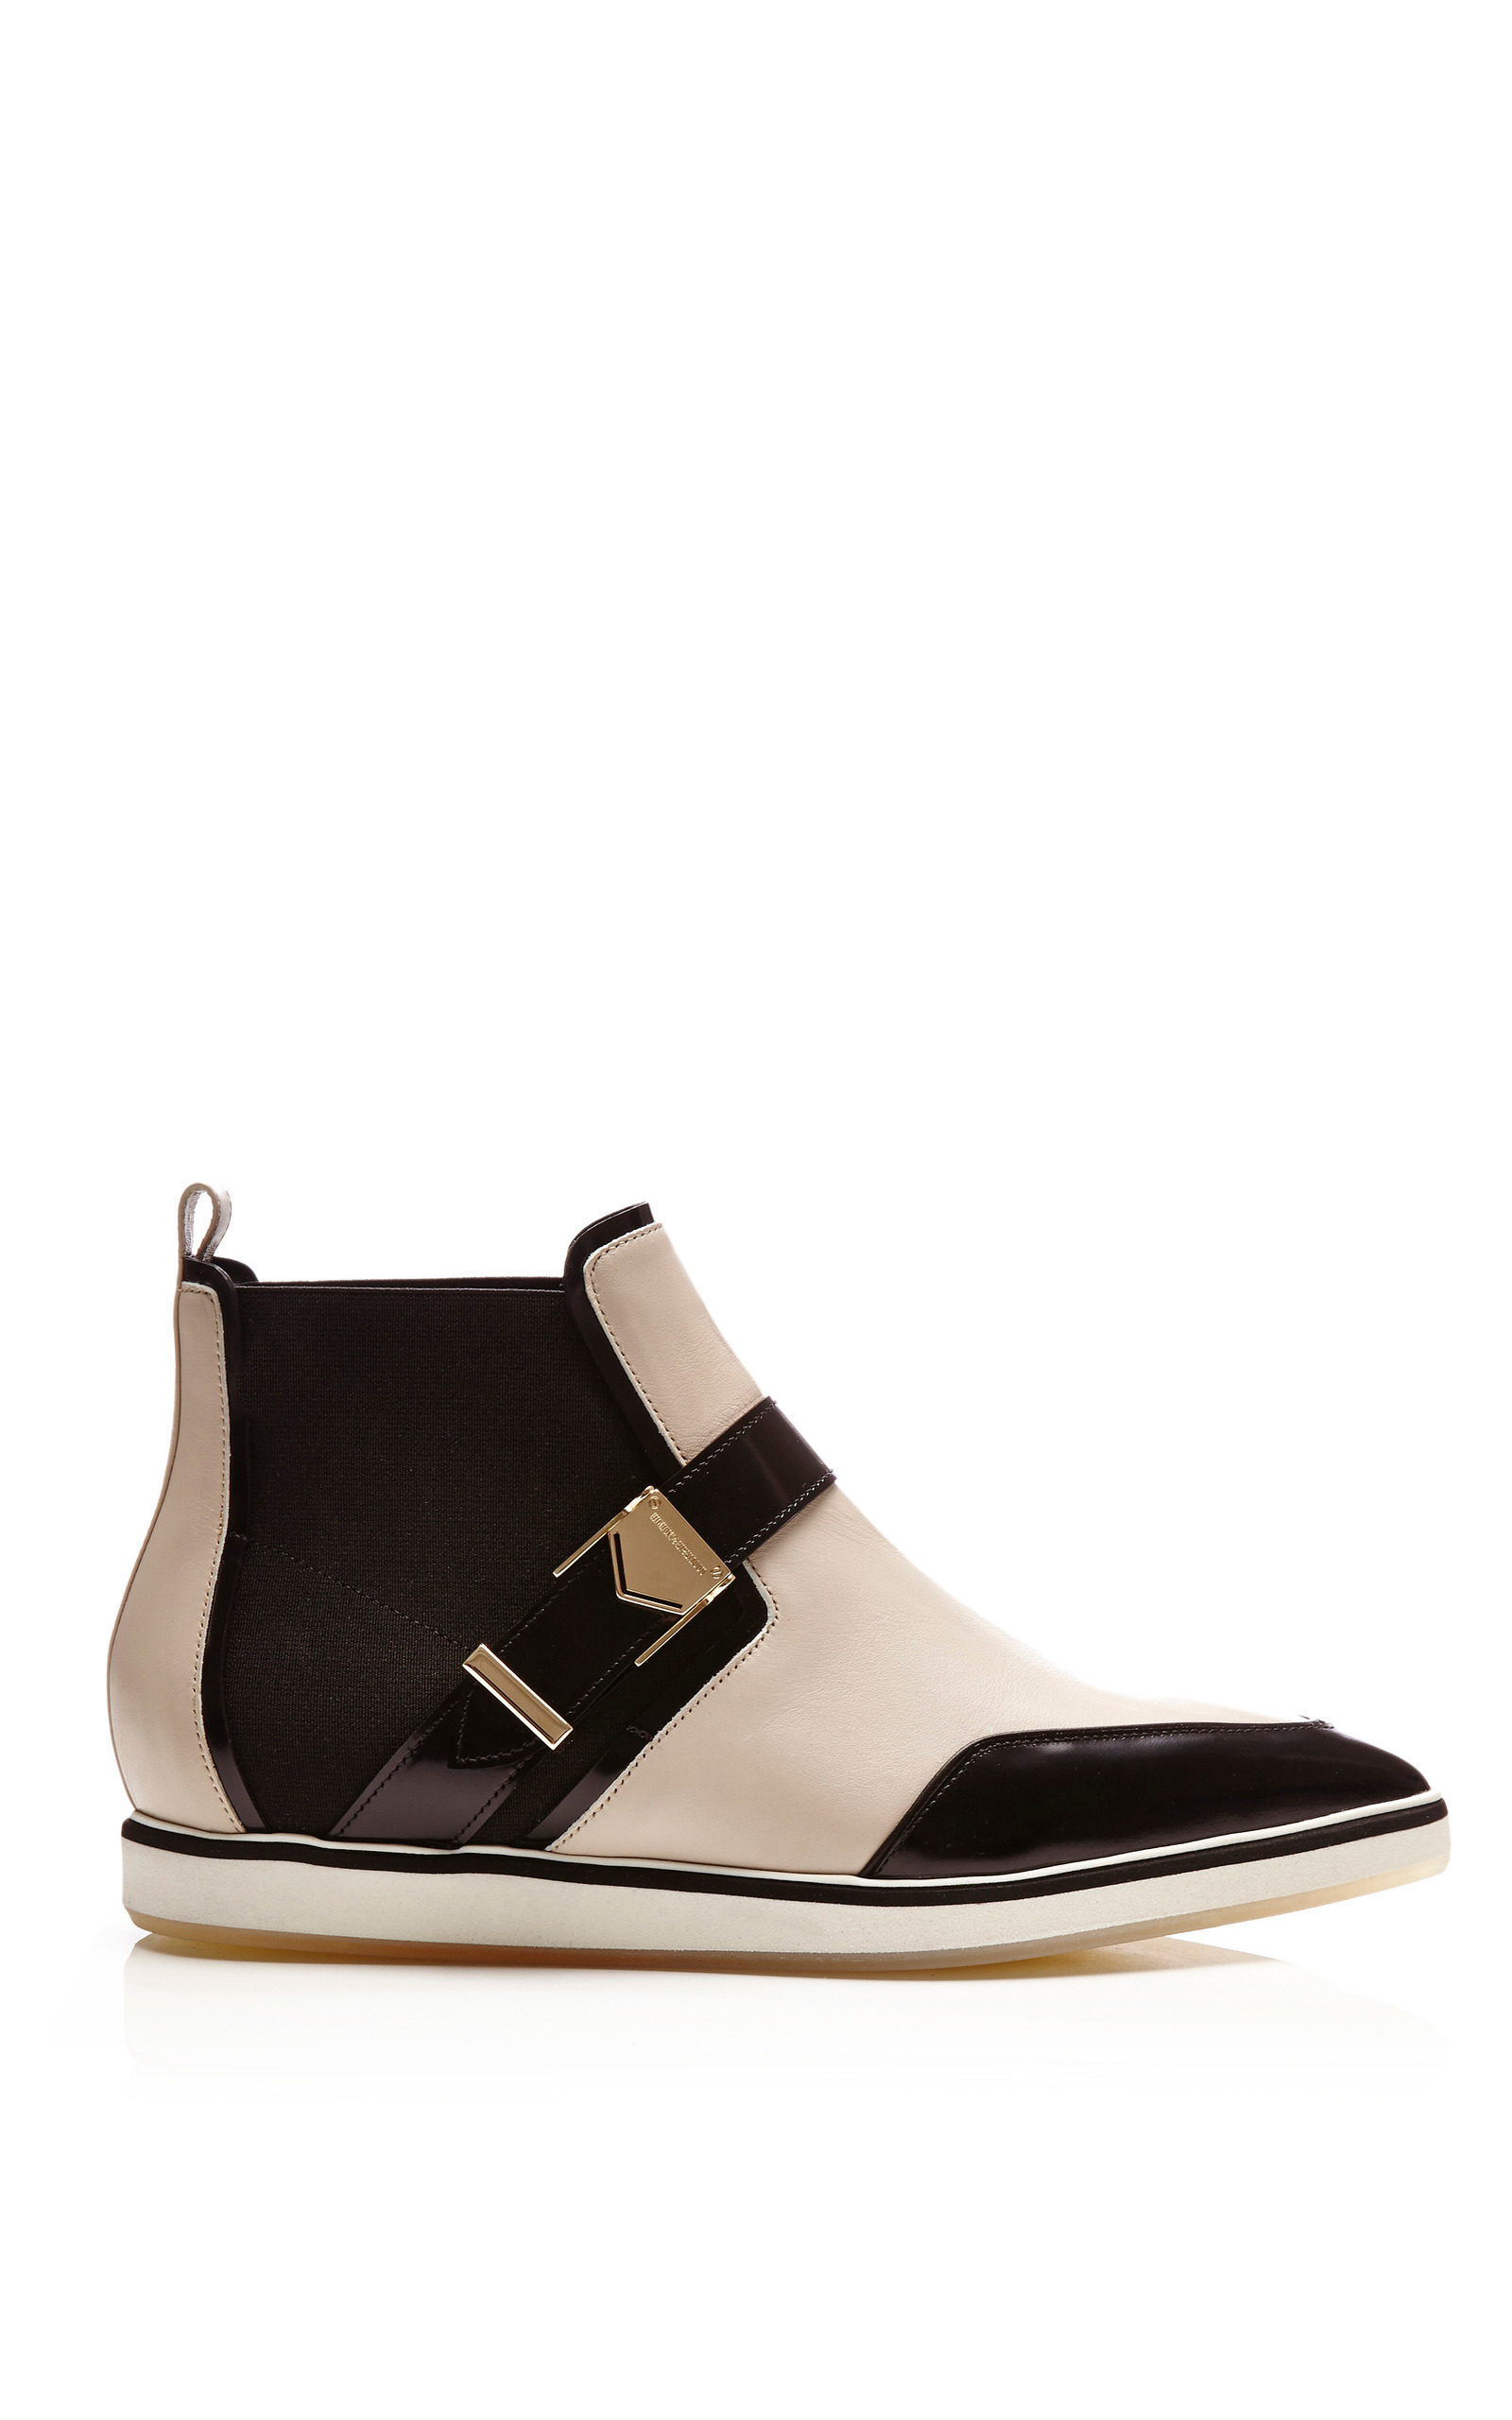 white and black calf leather pointy flat boots by moda